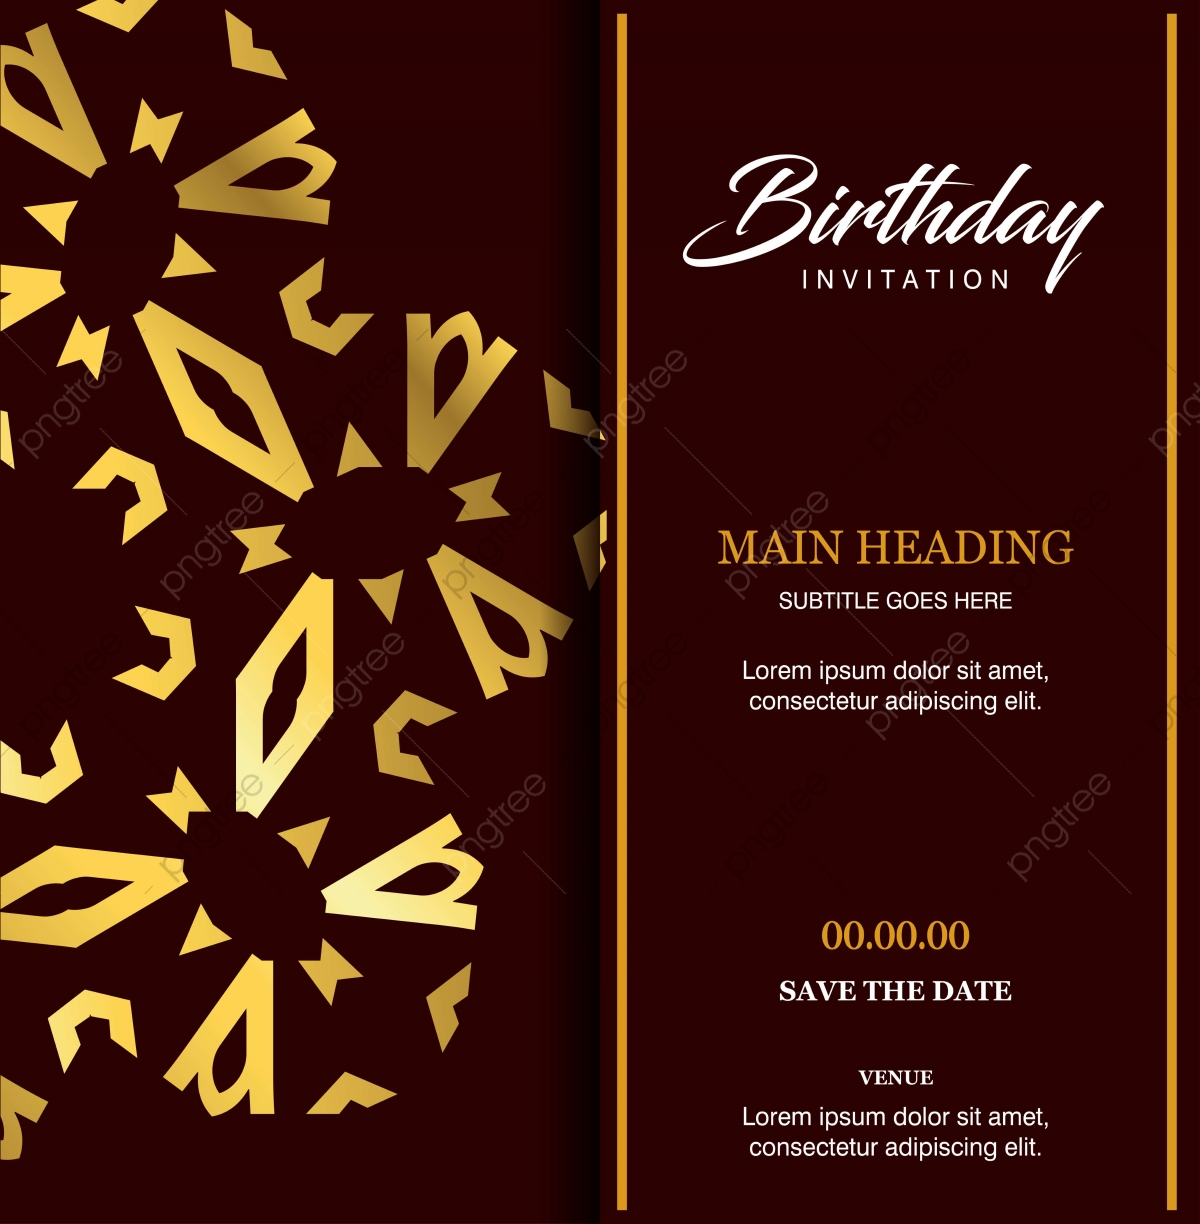 Birthday Card Design Vector Birthday Card Vector Template Birthday Card Vector Illustrator Birthday Card Ideas Png And Vector With Transparent Background For Free Download